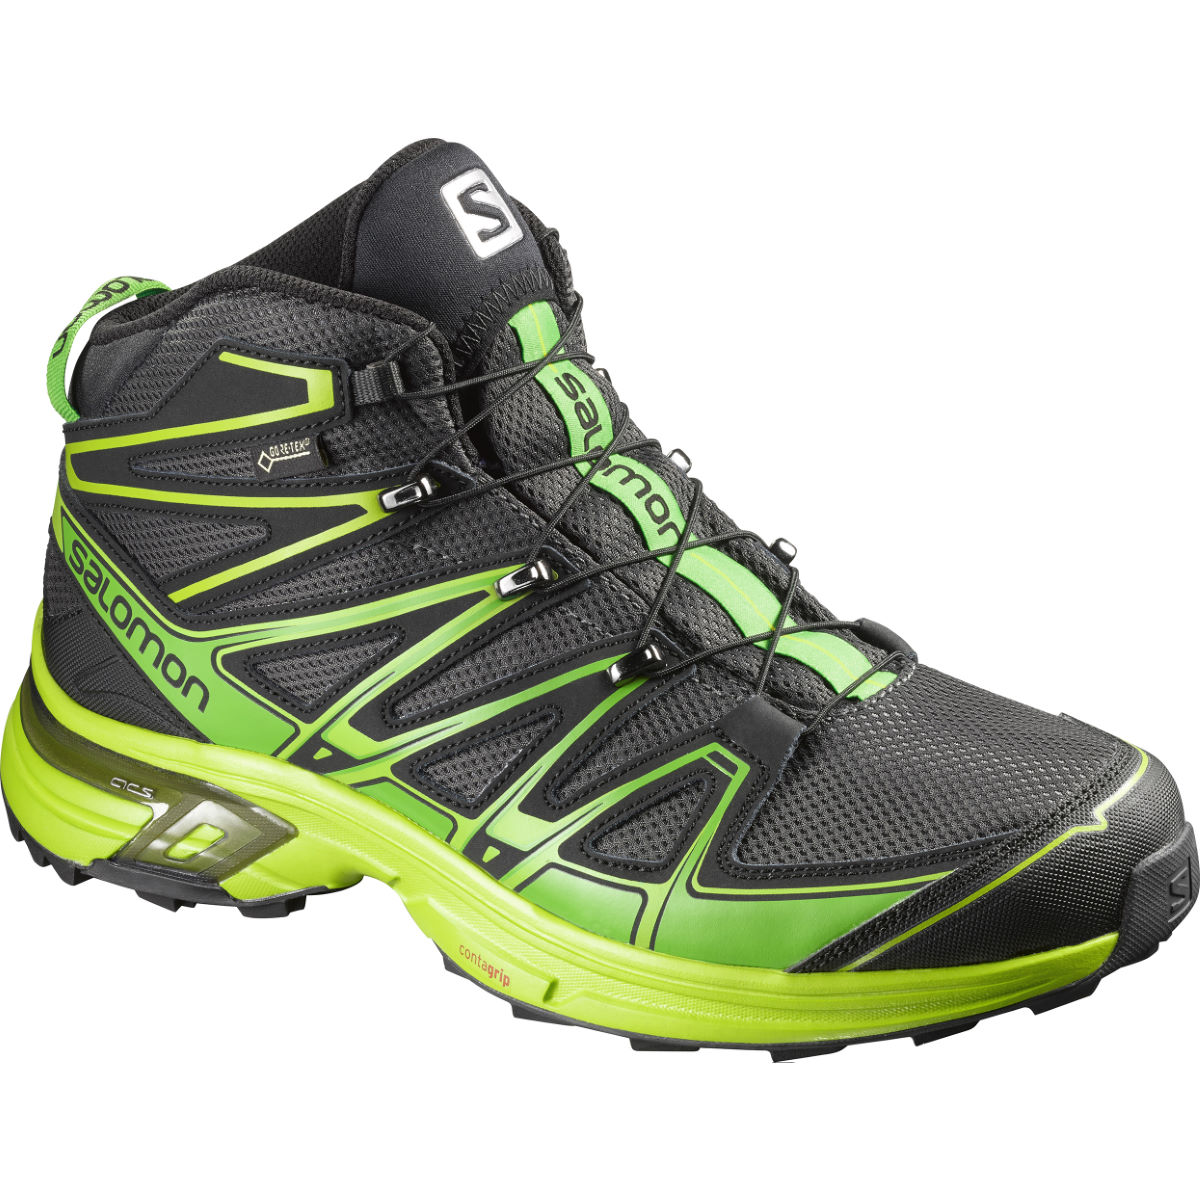 Chaussures Salomon X-Chase Mid GTX (AH16) - 7,5 UK Gris